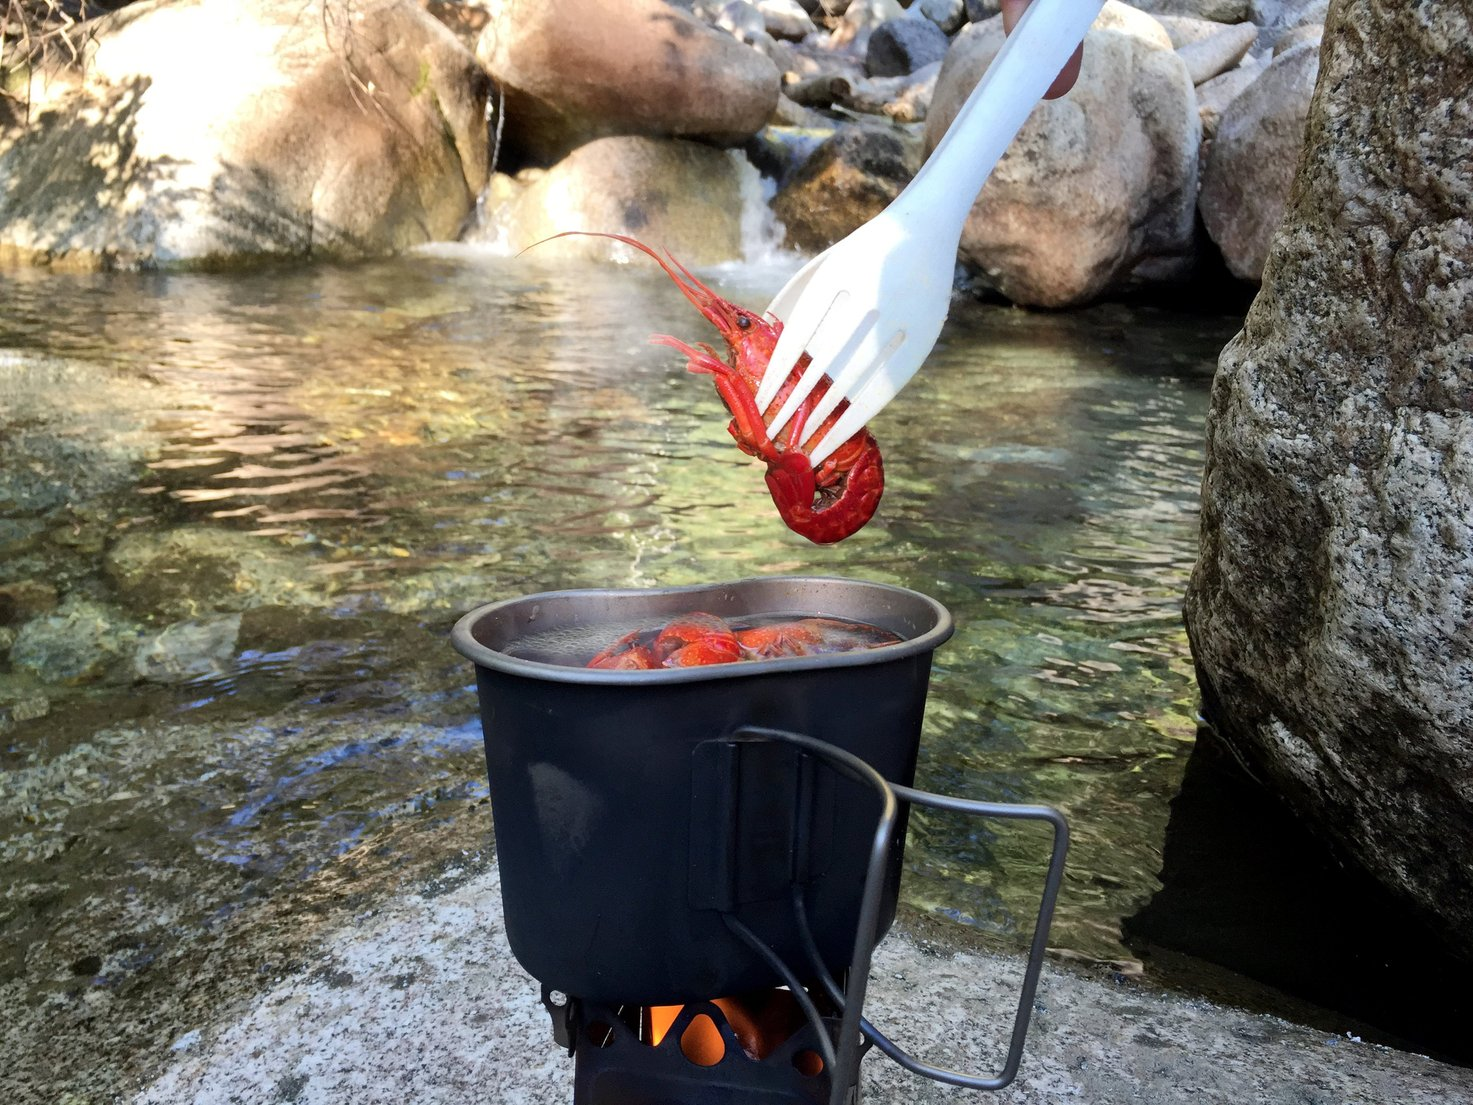 Camping Cooking Utensil - With the Emberlit Sprongs you do not only get an American made Spoon and Fork, you get a long handle for getting every part of your MRE meal, and you can also turn them into a practical pair of tongs, perfekt for cooking noodles, and turning your food on the pan, by connecting the two products to each other.